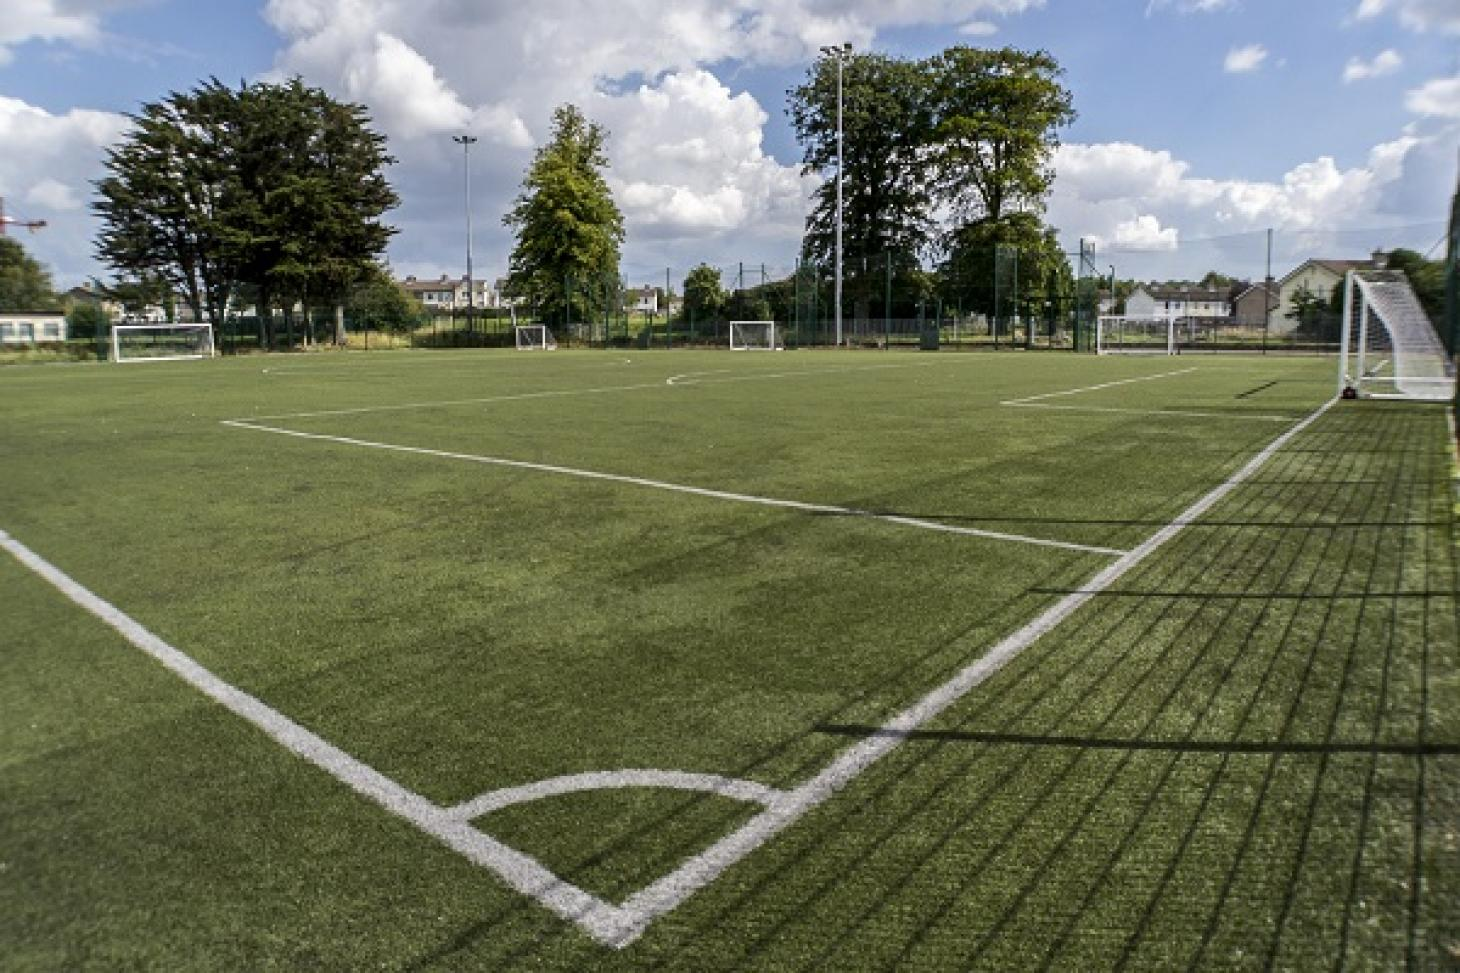 Corduff Sports Centre 11 a side | 3G Astroturf football pitch